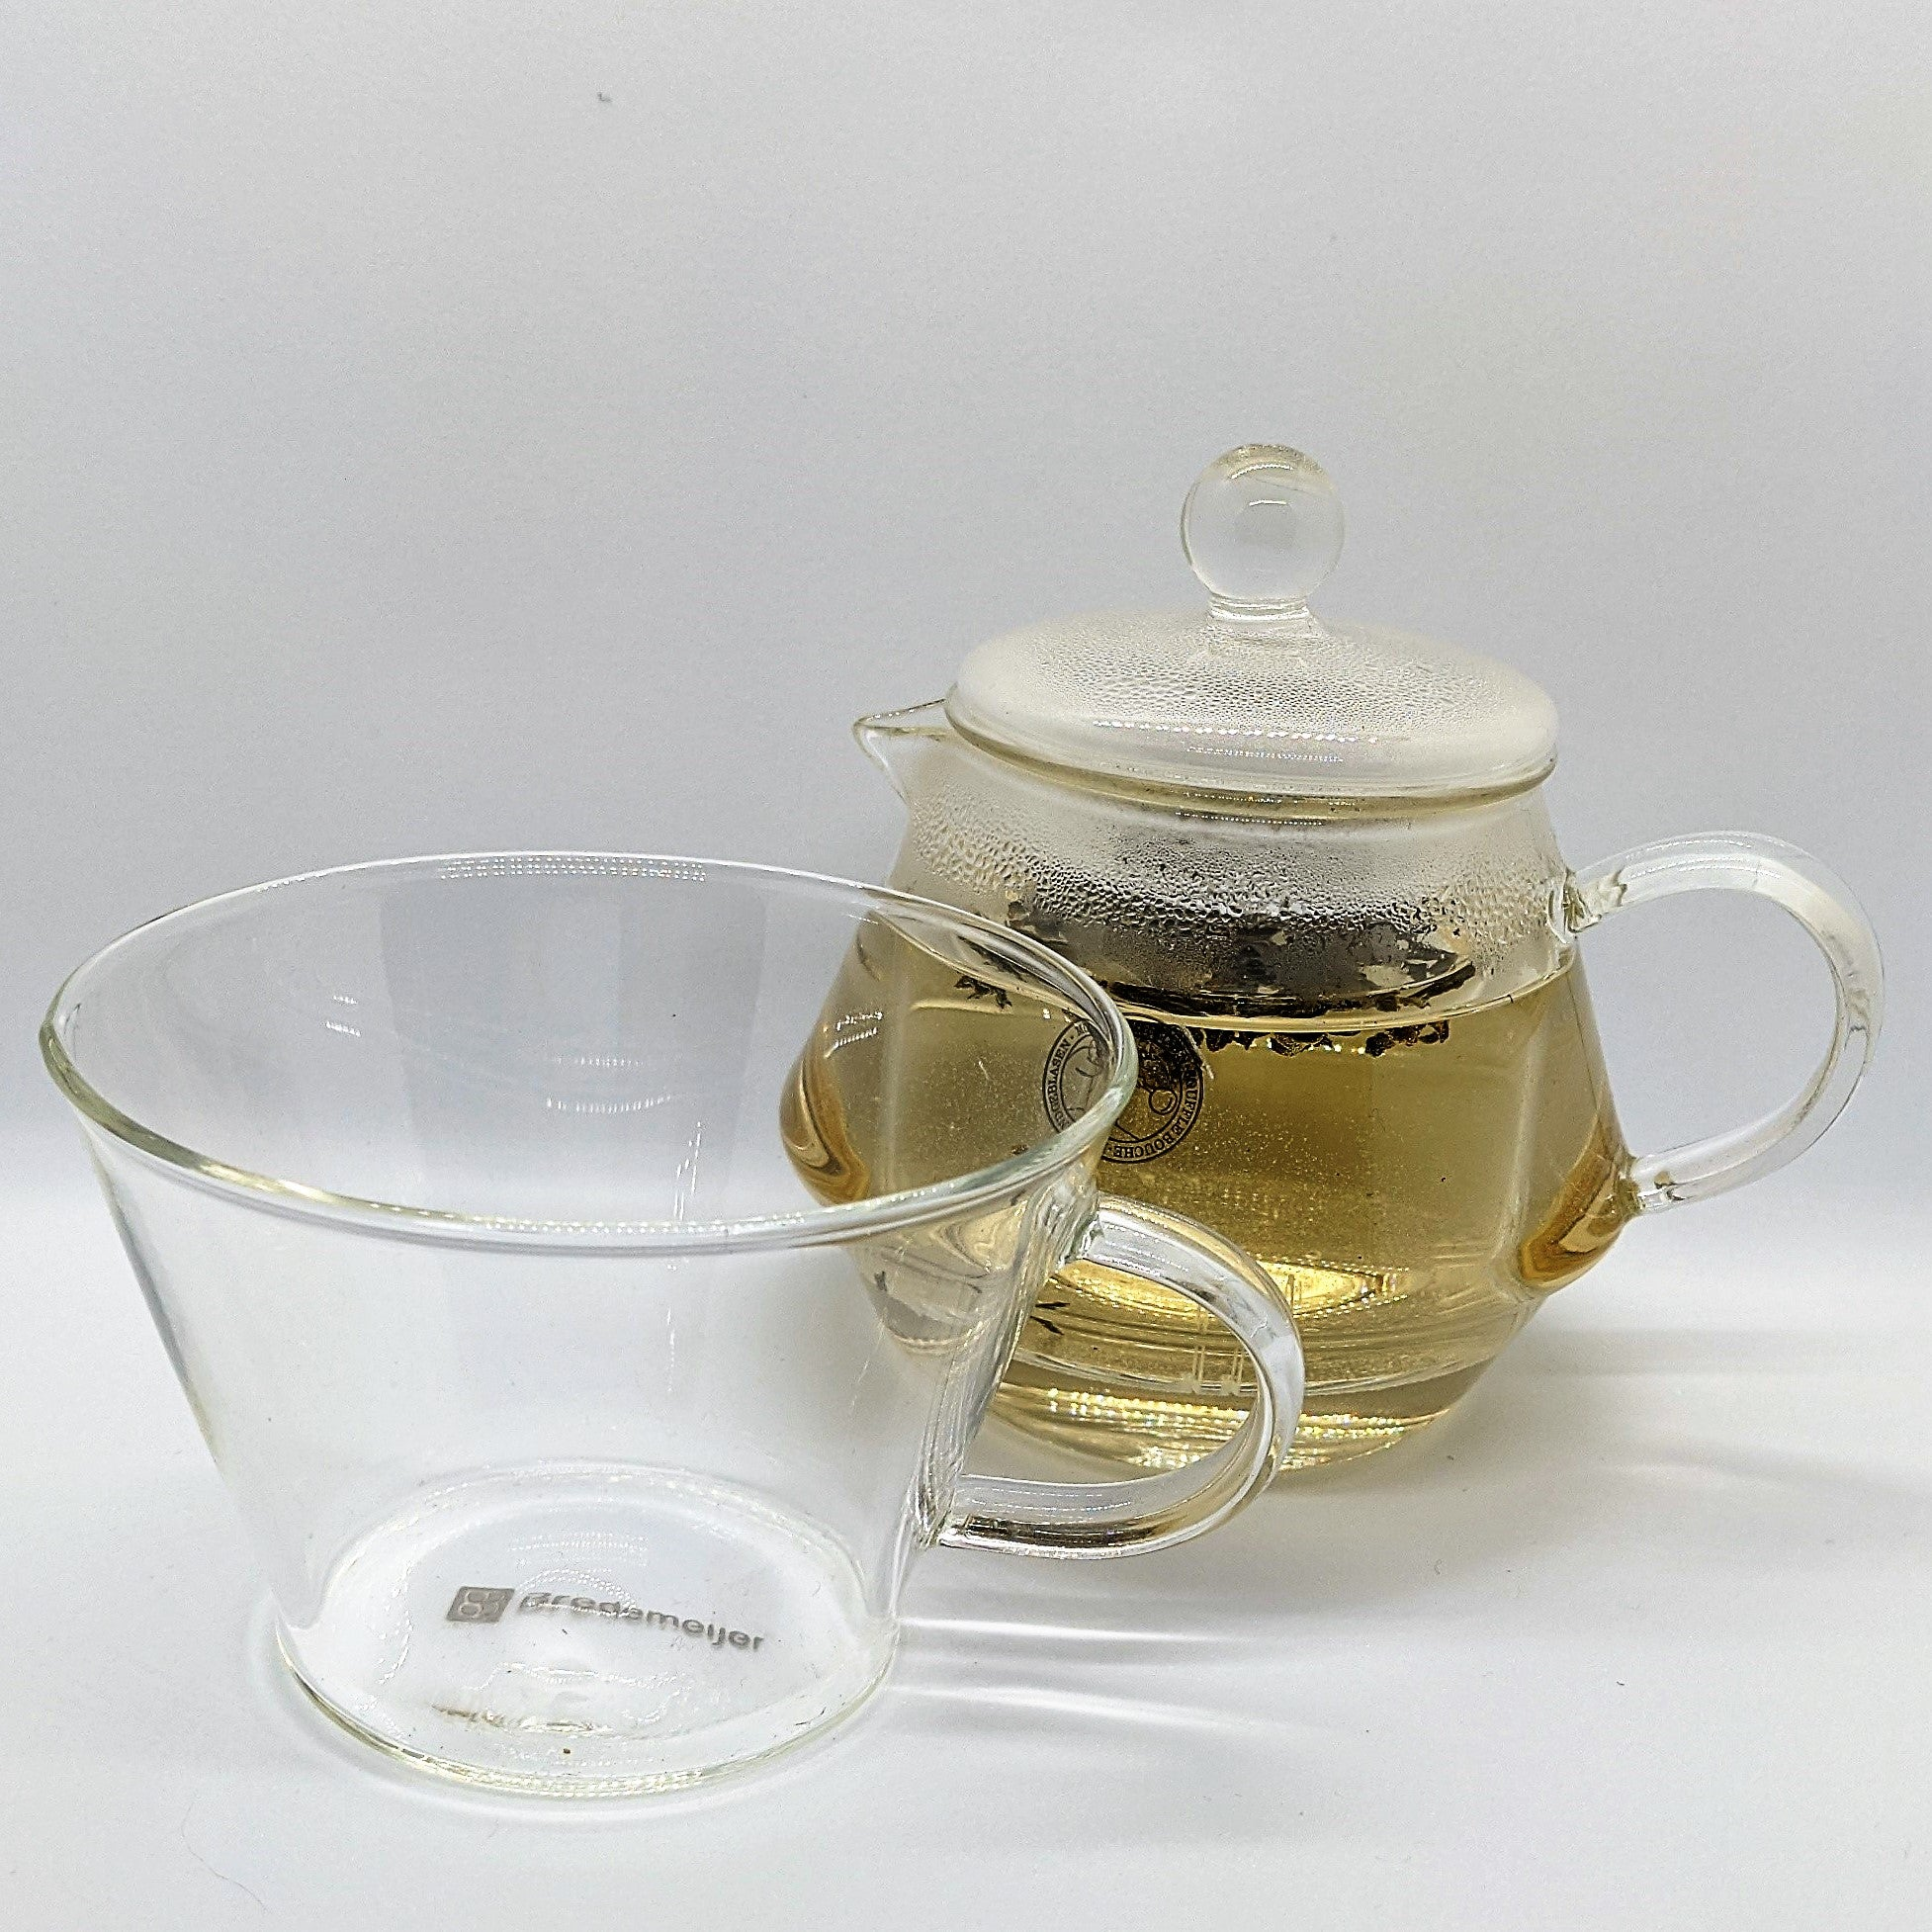 steeped tea in a glass tea for one set